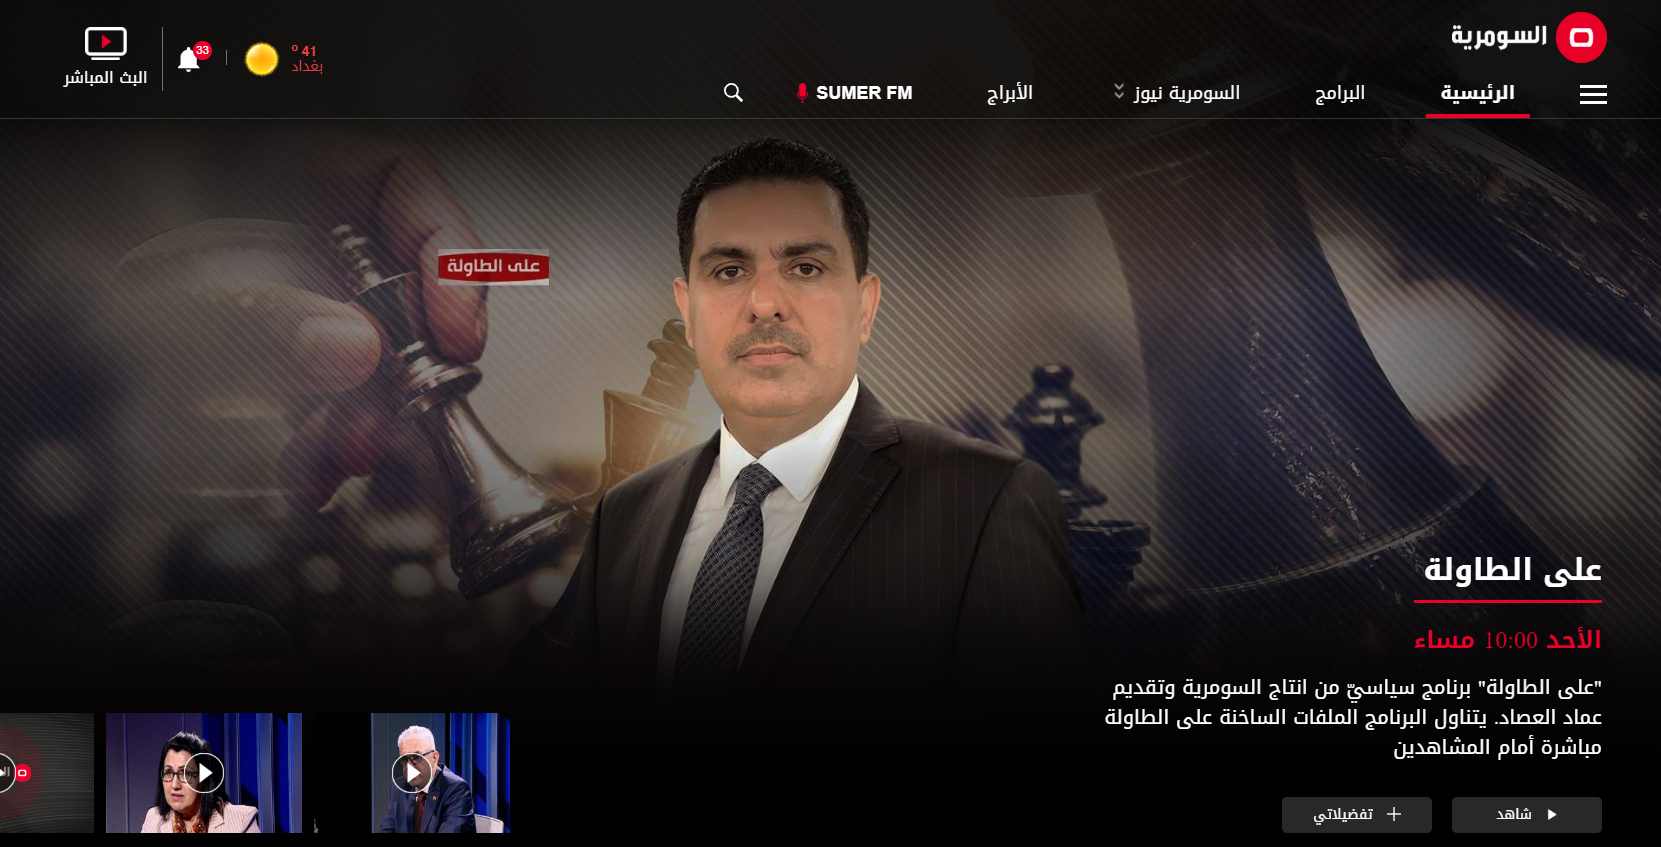 Softimpact launched Alsumaria TV revamped website creating